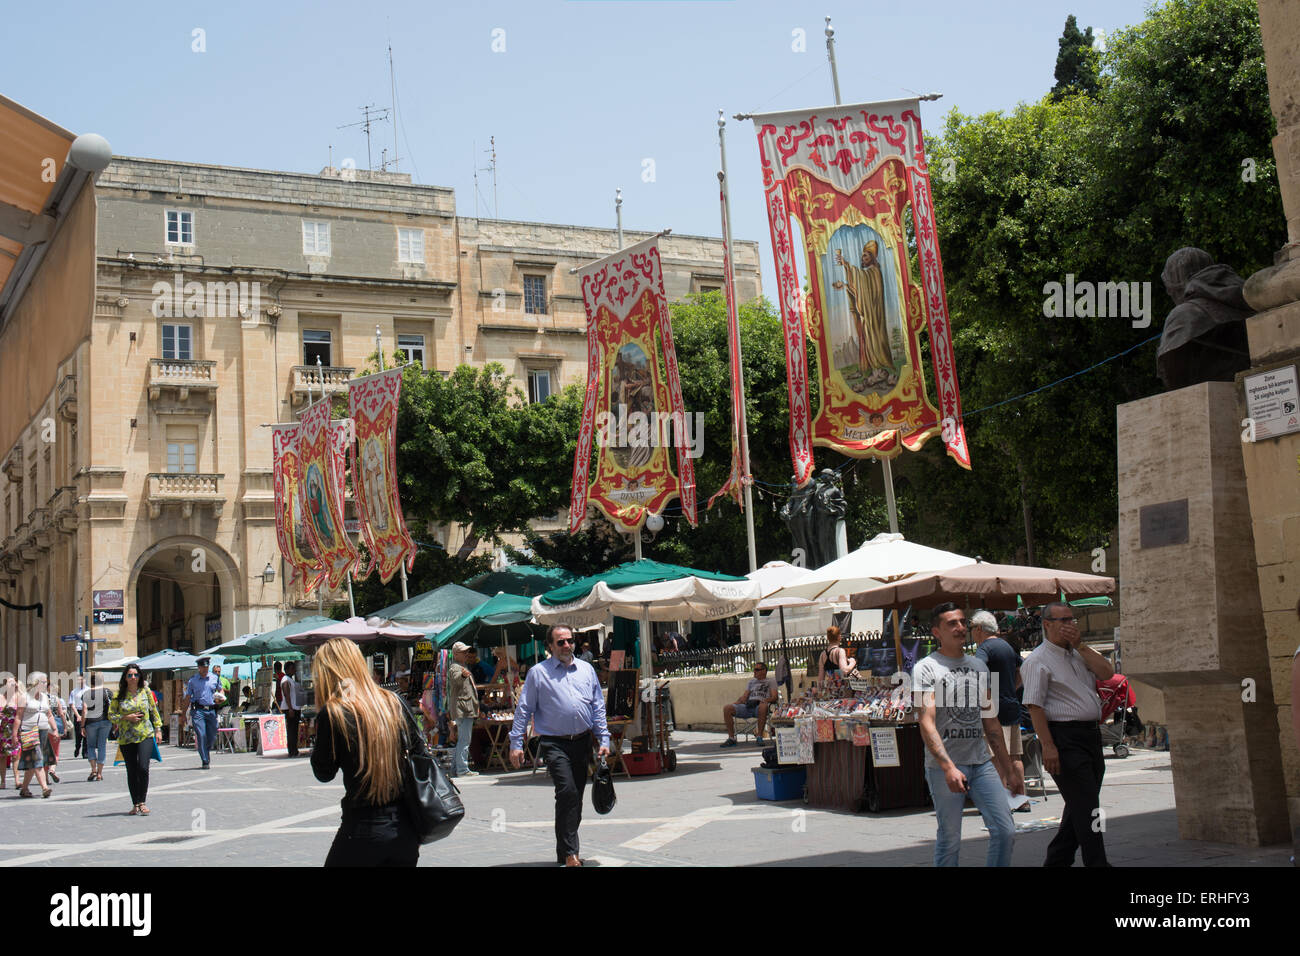 Religious banners dedicated to saints line Republic street in the center of Valletta. Souvenirs are for sale on - Stock Image